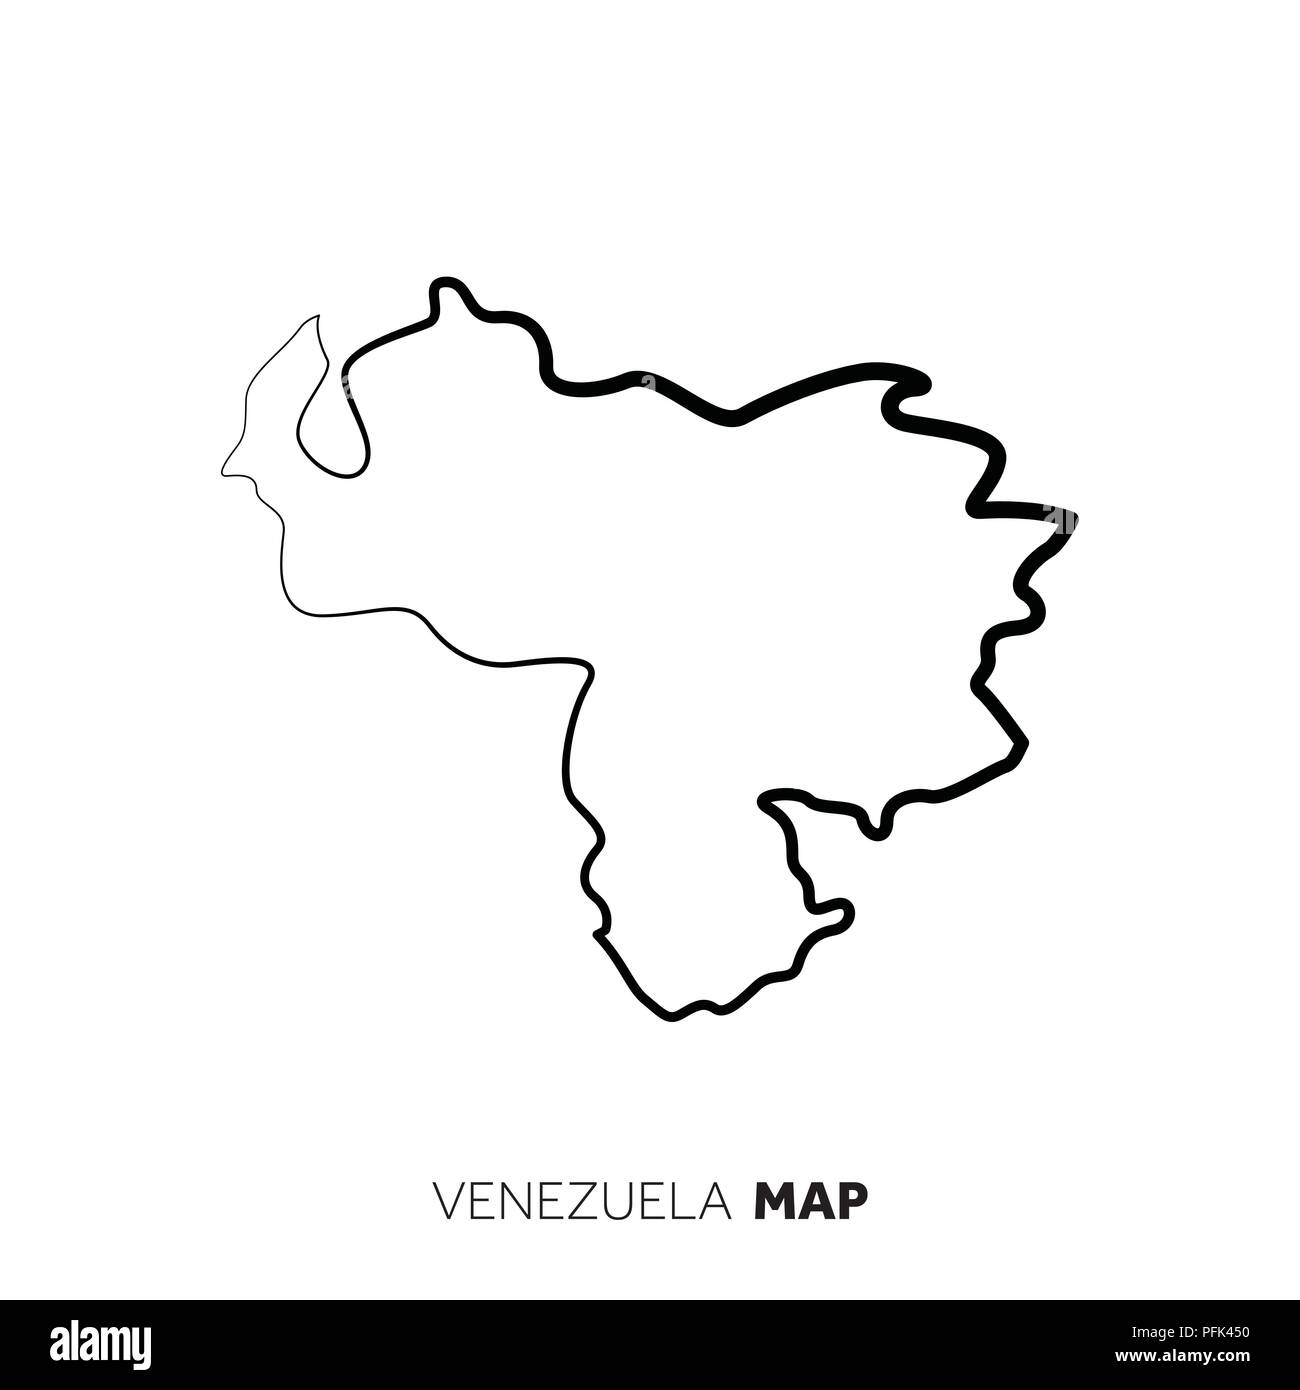 Venezuela Vector Country Map Outline Black Line On White Background